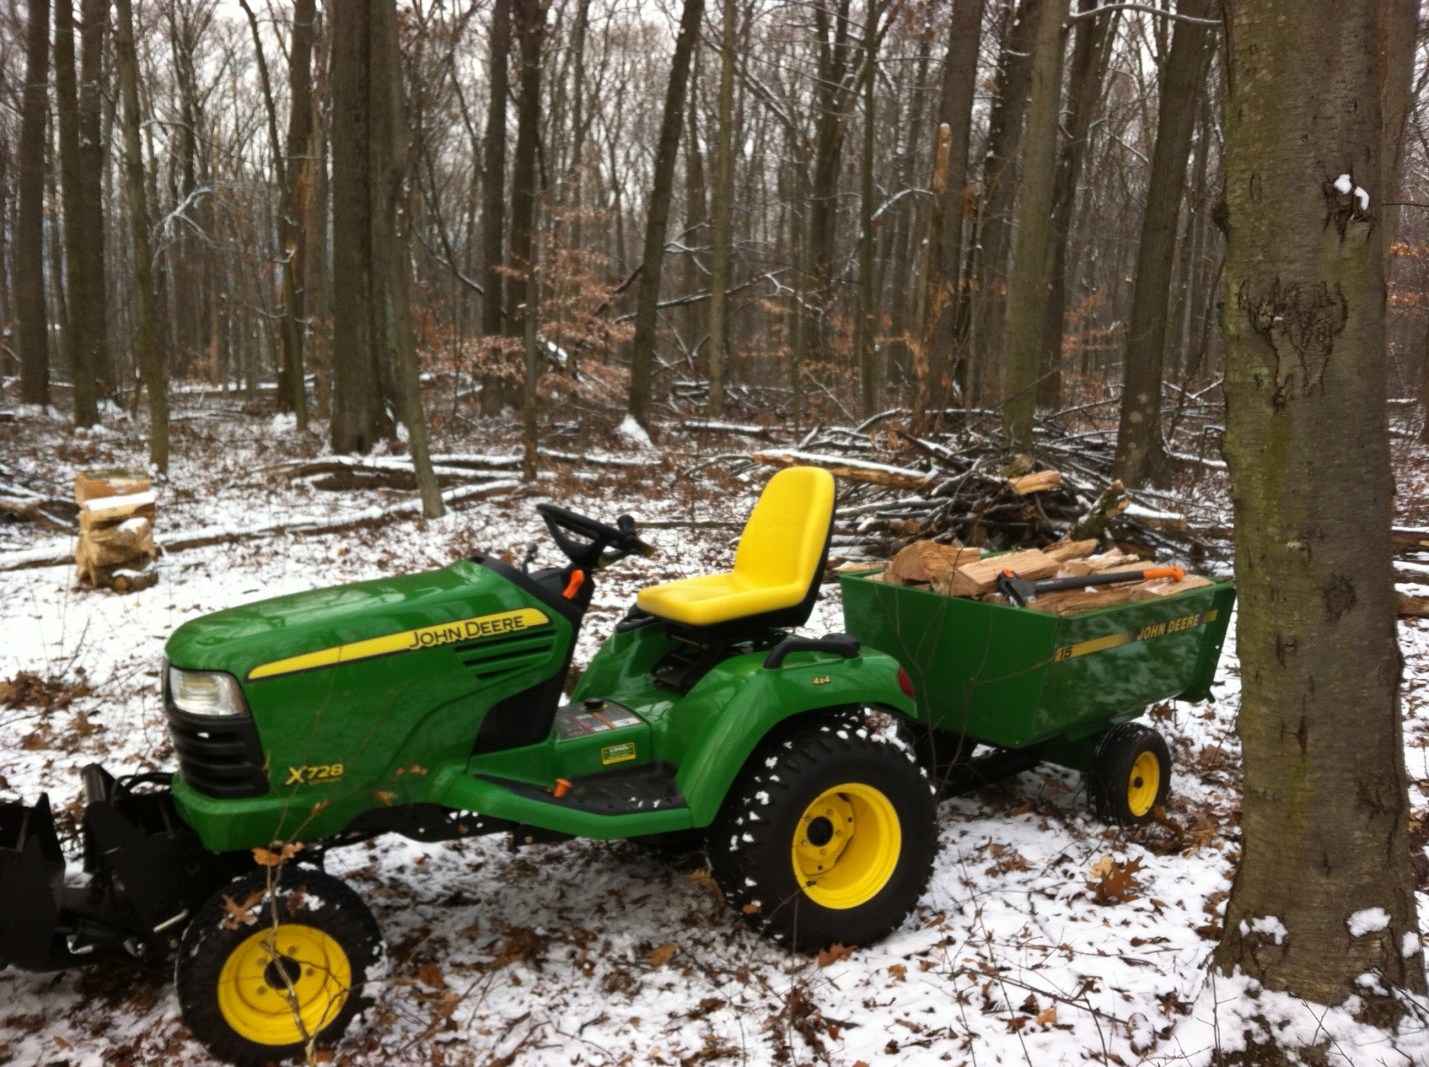 Anyone use a garden tractor as a firewood tool? - MyTractorForum.com ...